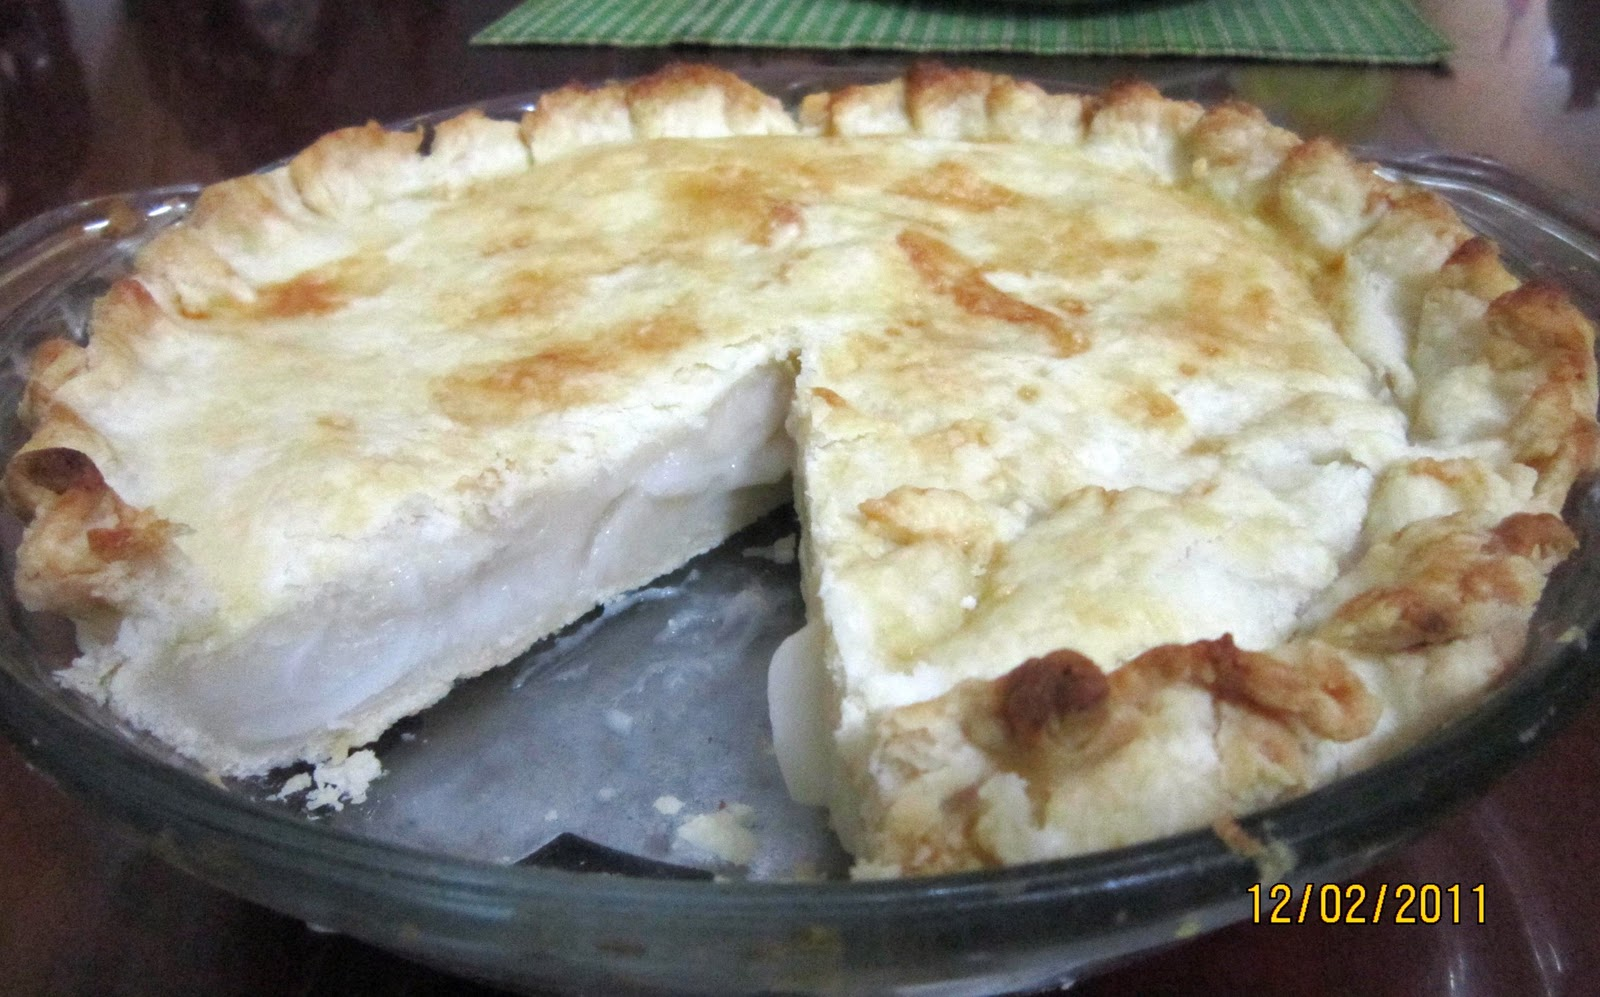 buko pie Colette's buko pie at pasalubong was first established in 1989 by mr plaridel dela cruz when he saw how successful the buko pie business in los baños fr.